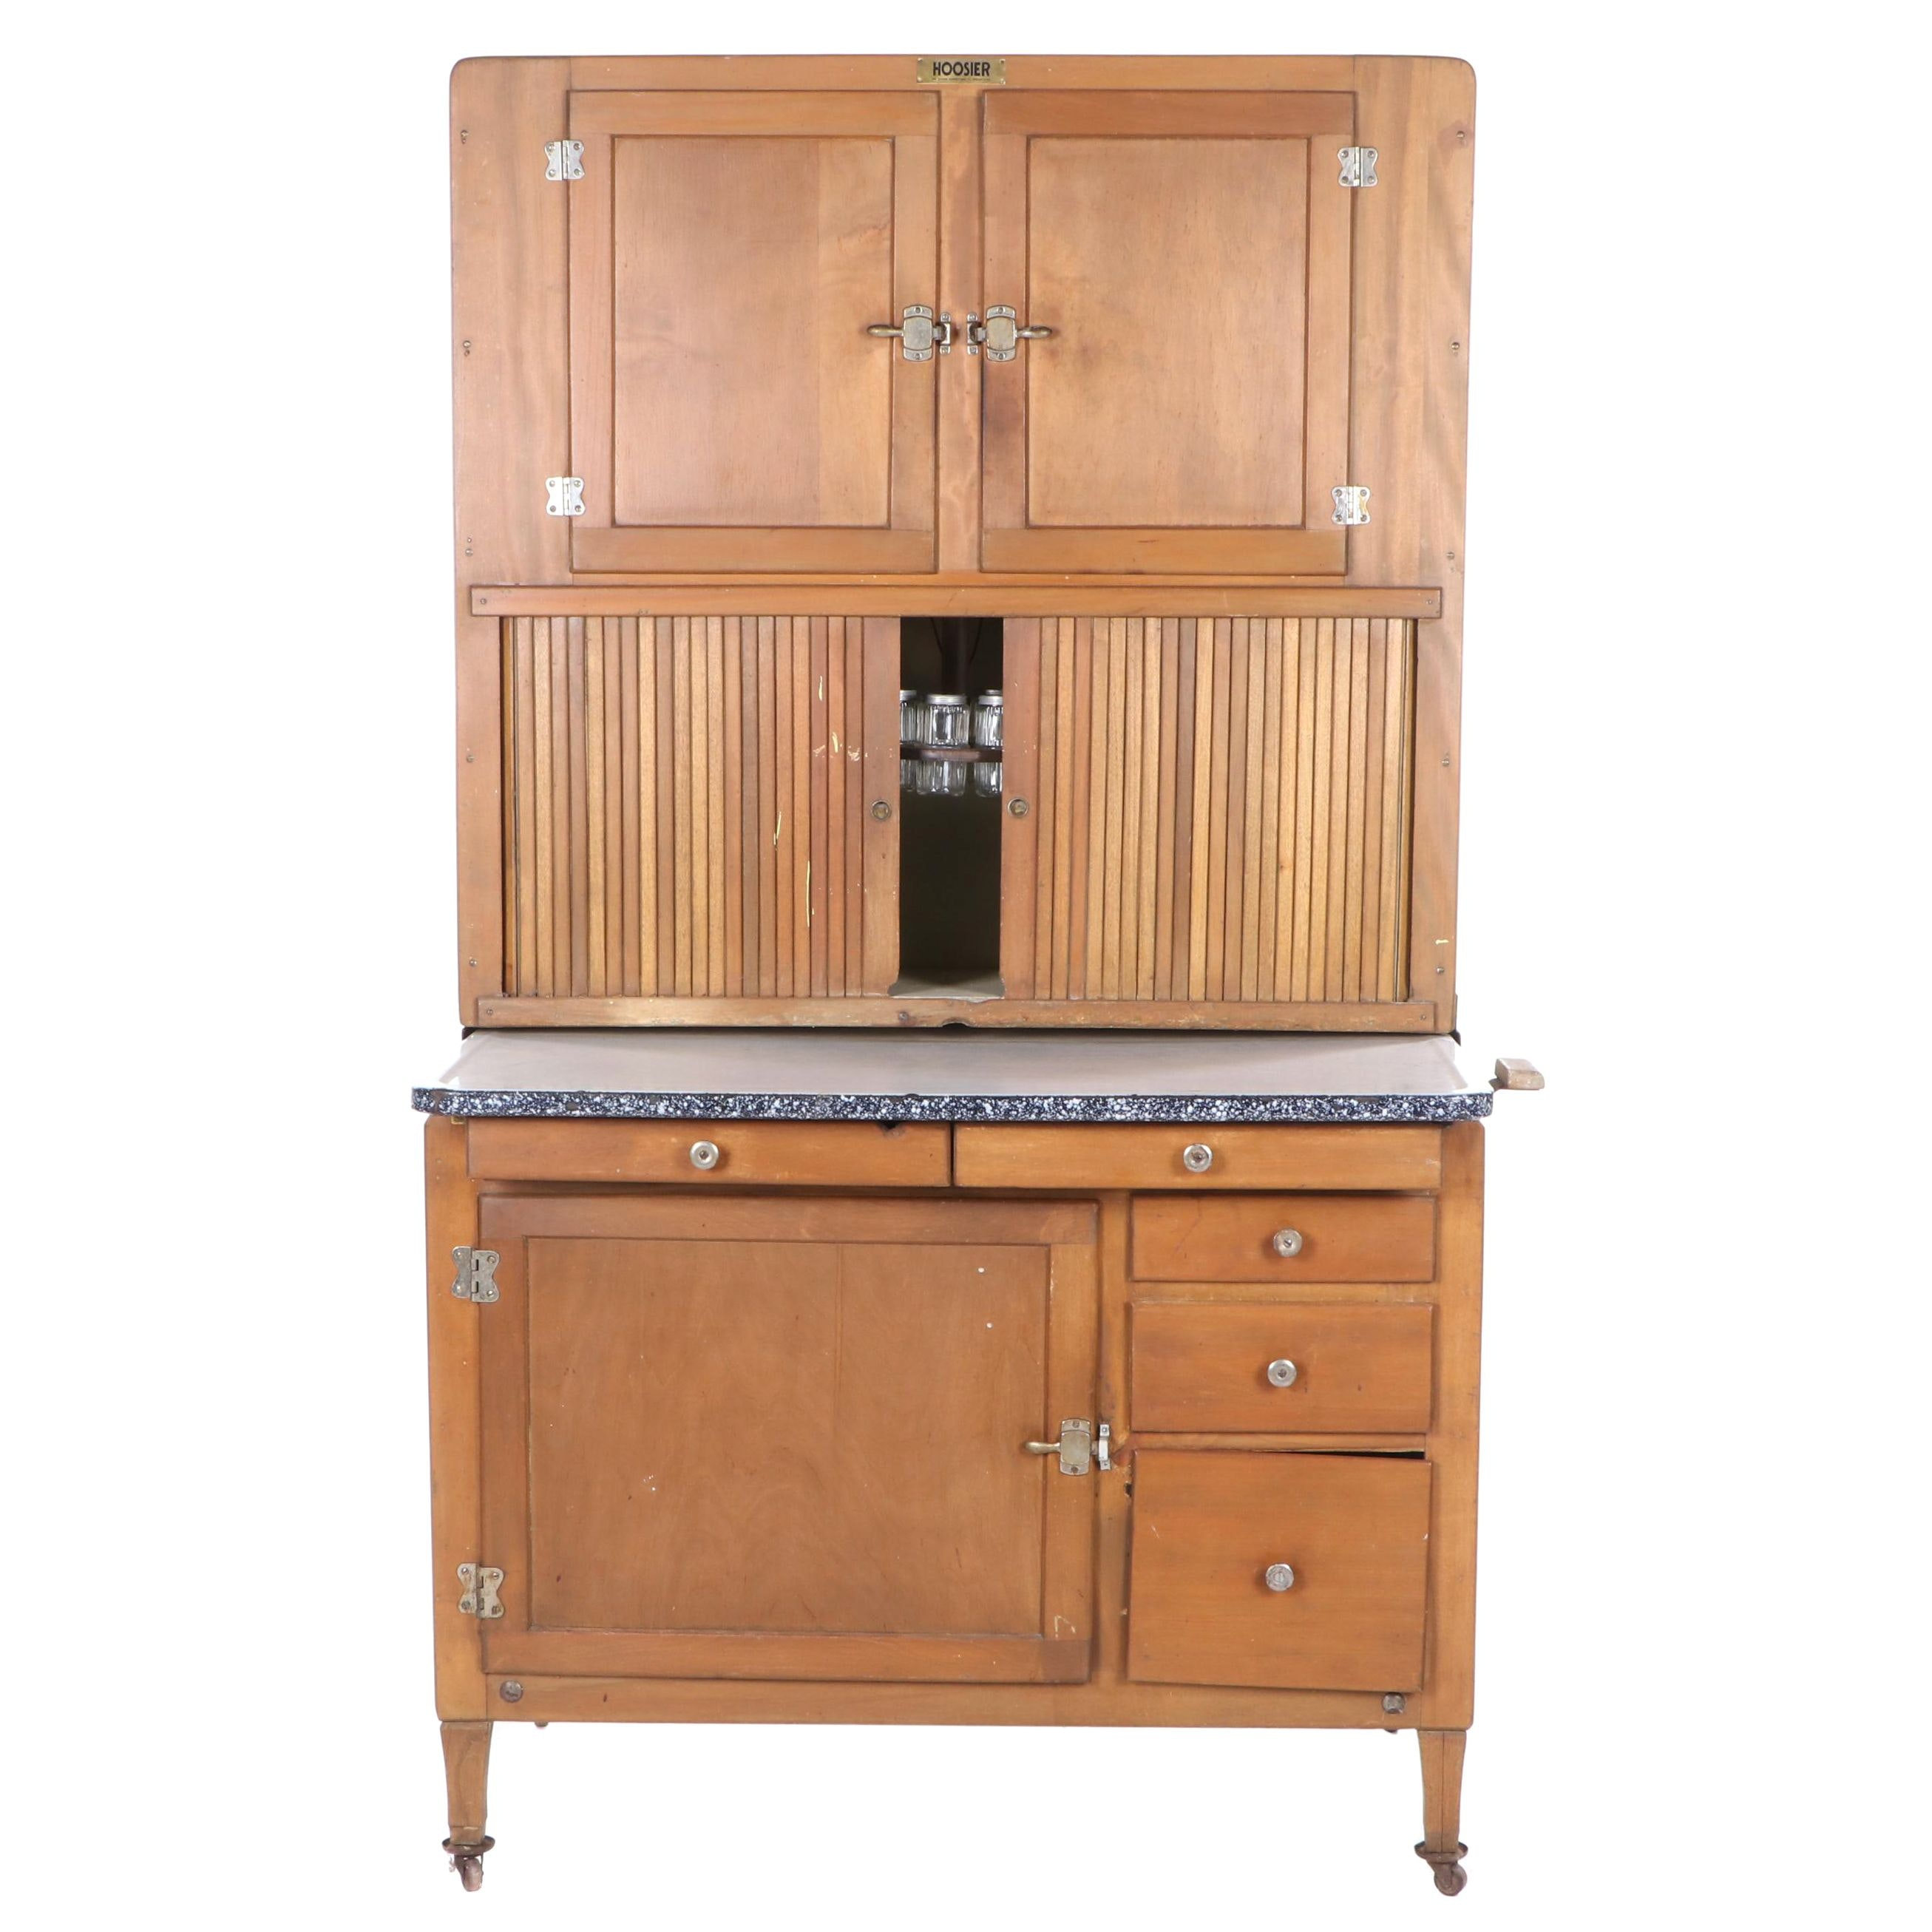 Birch Two-Piece Hoosier Cabinet by The Hoosier Manufacturing Company, 20th C.